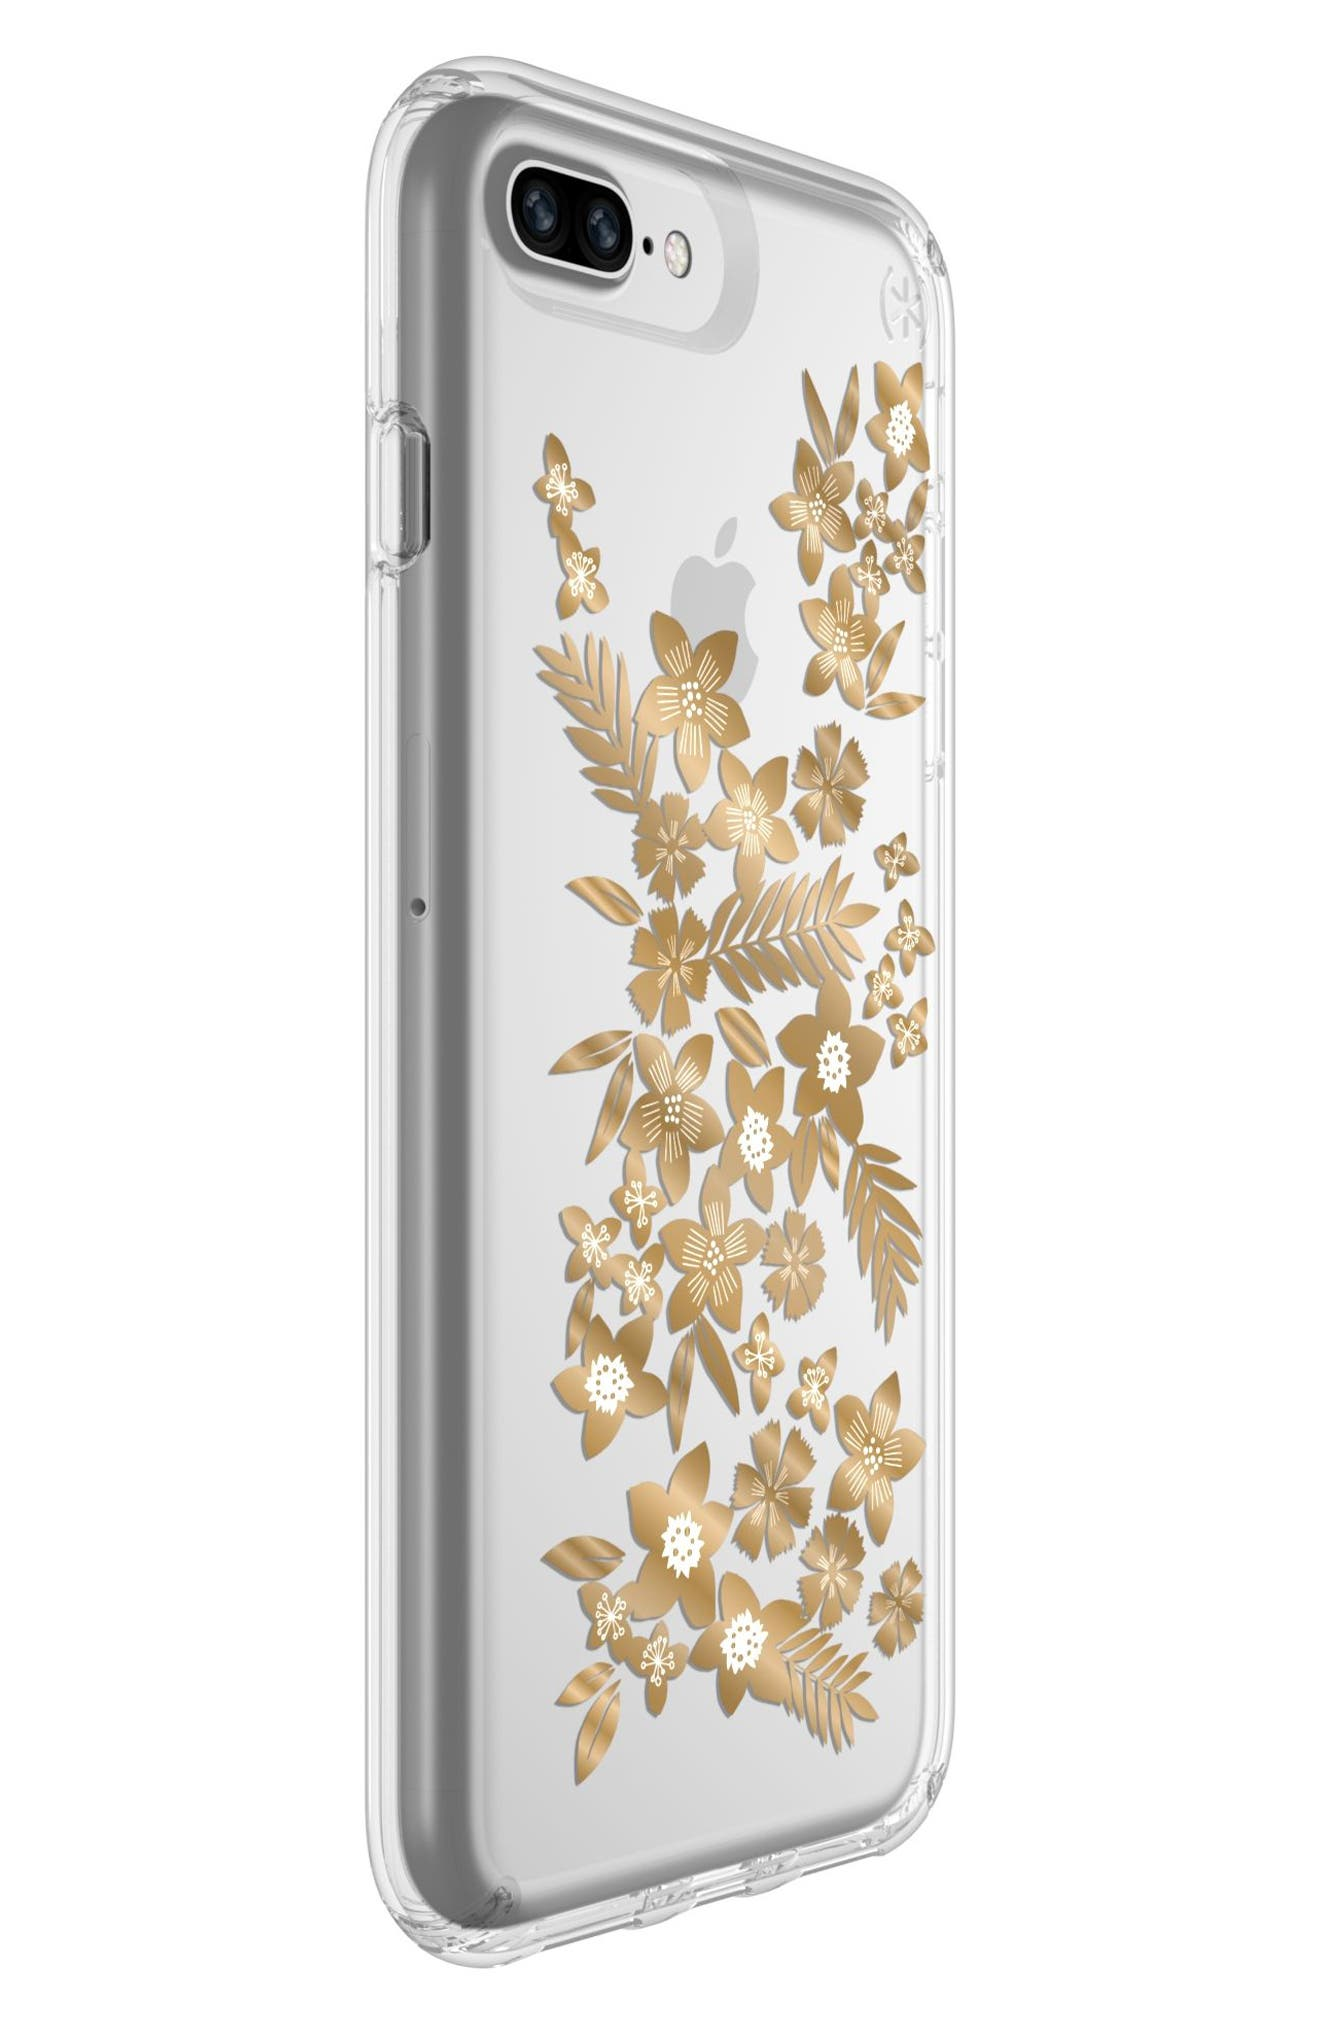 Floral iPhone 6 Plus/6s Plus/7 Plus/8 Plus Case,                             Alternate thumbnail 2, color,                             Shimmer Floral Metallic/ Clear